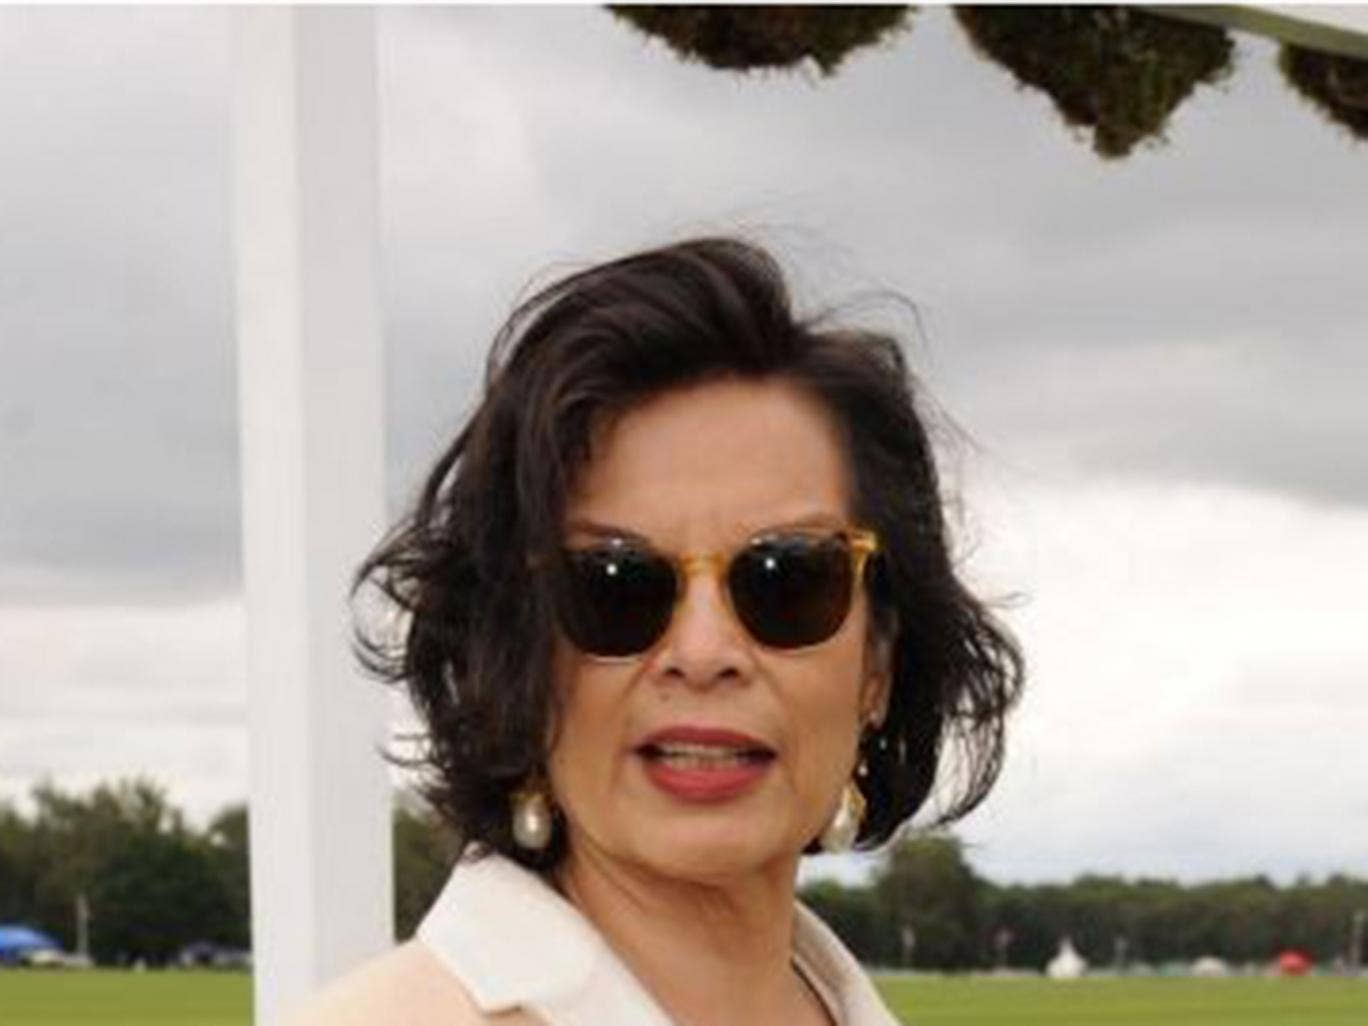 Celebrity protesters such as anti-fracking crusader Bianca Jagger are distorting the BBC's coverage of rural affairs, a major study commissioned by the BBC Trust has found.